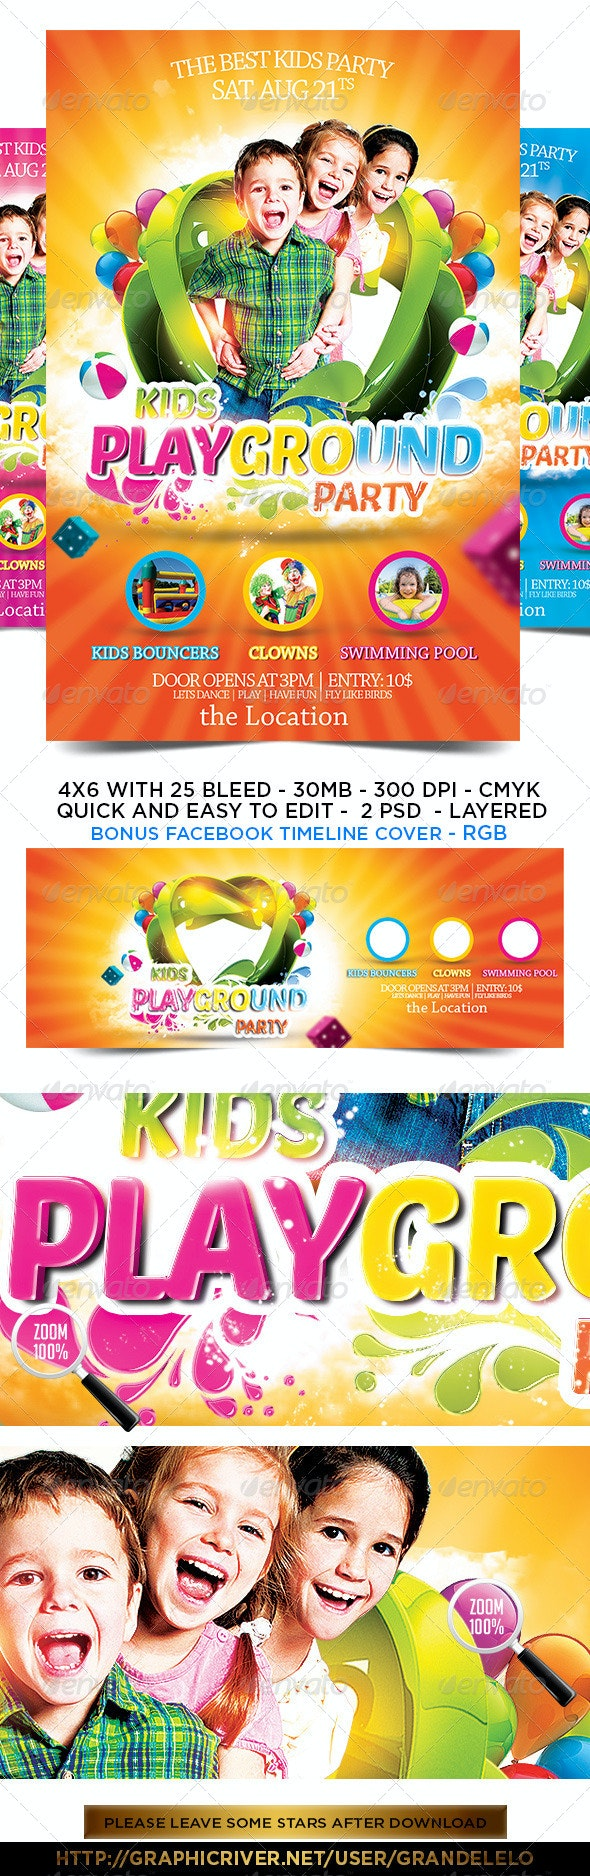 Kids Party Flyer Template 2.0 - Clubs & Parties Events